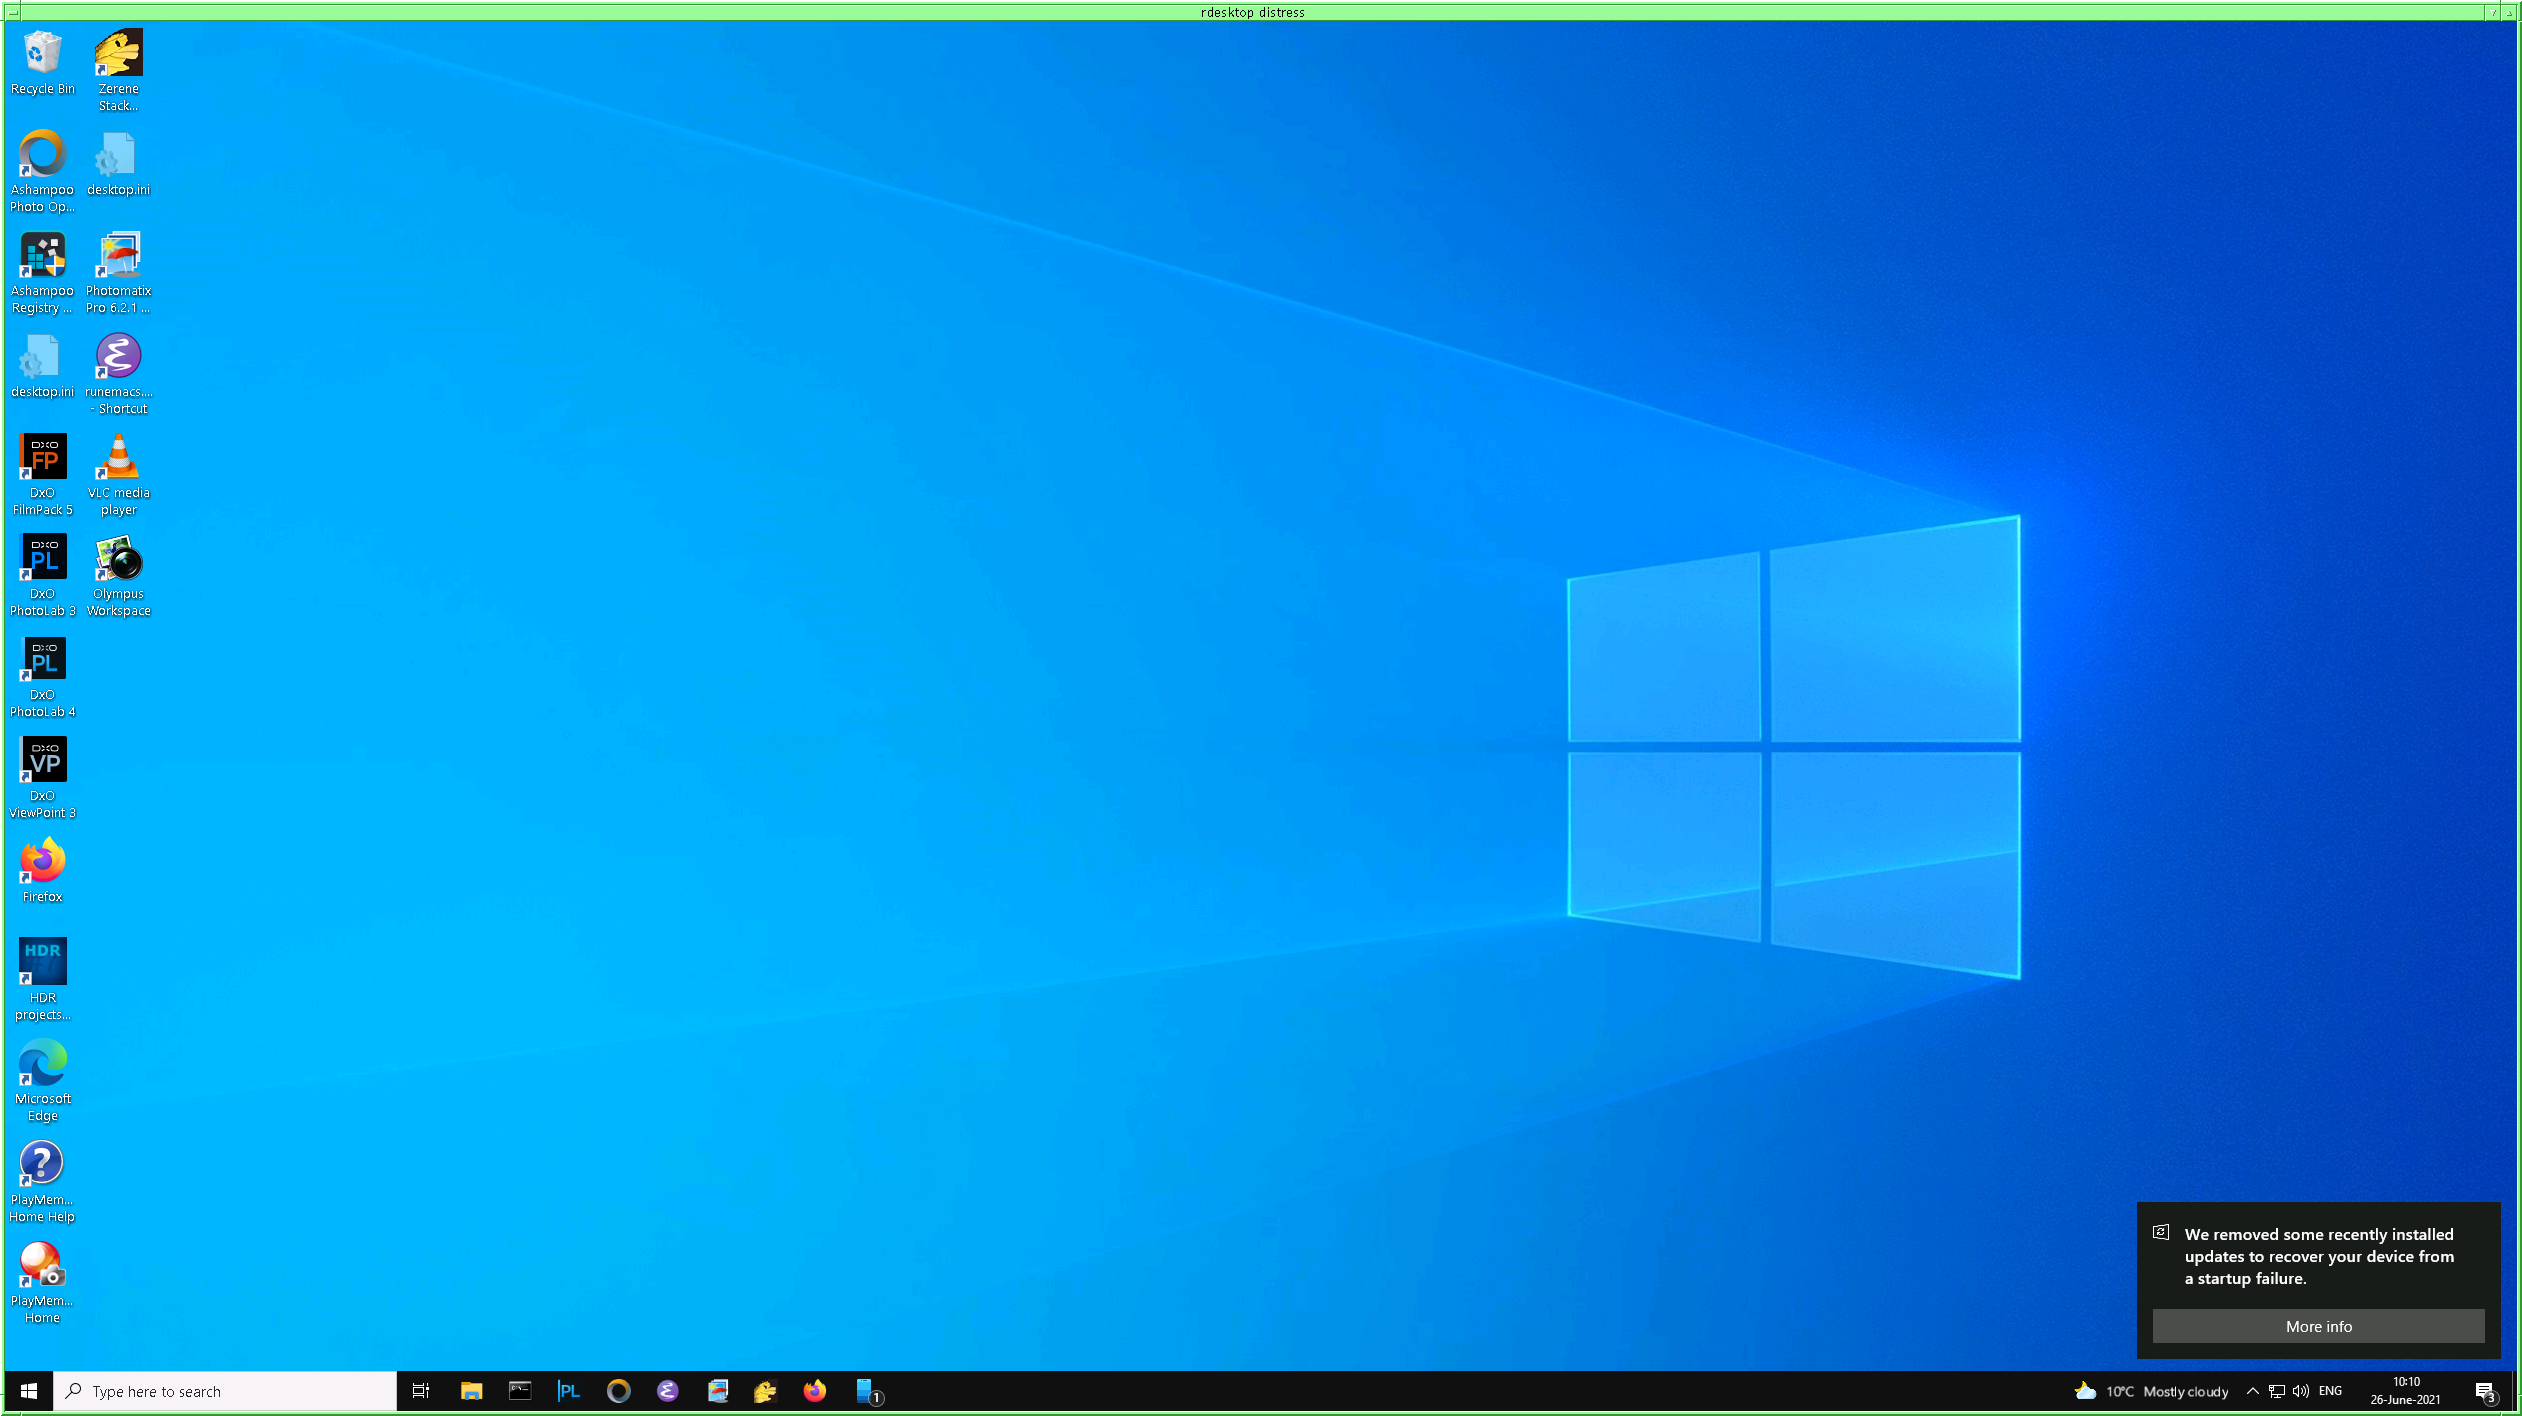 This should be Microsoft-fail-1.png.  Is it missing?